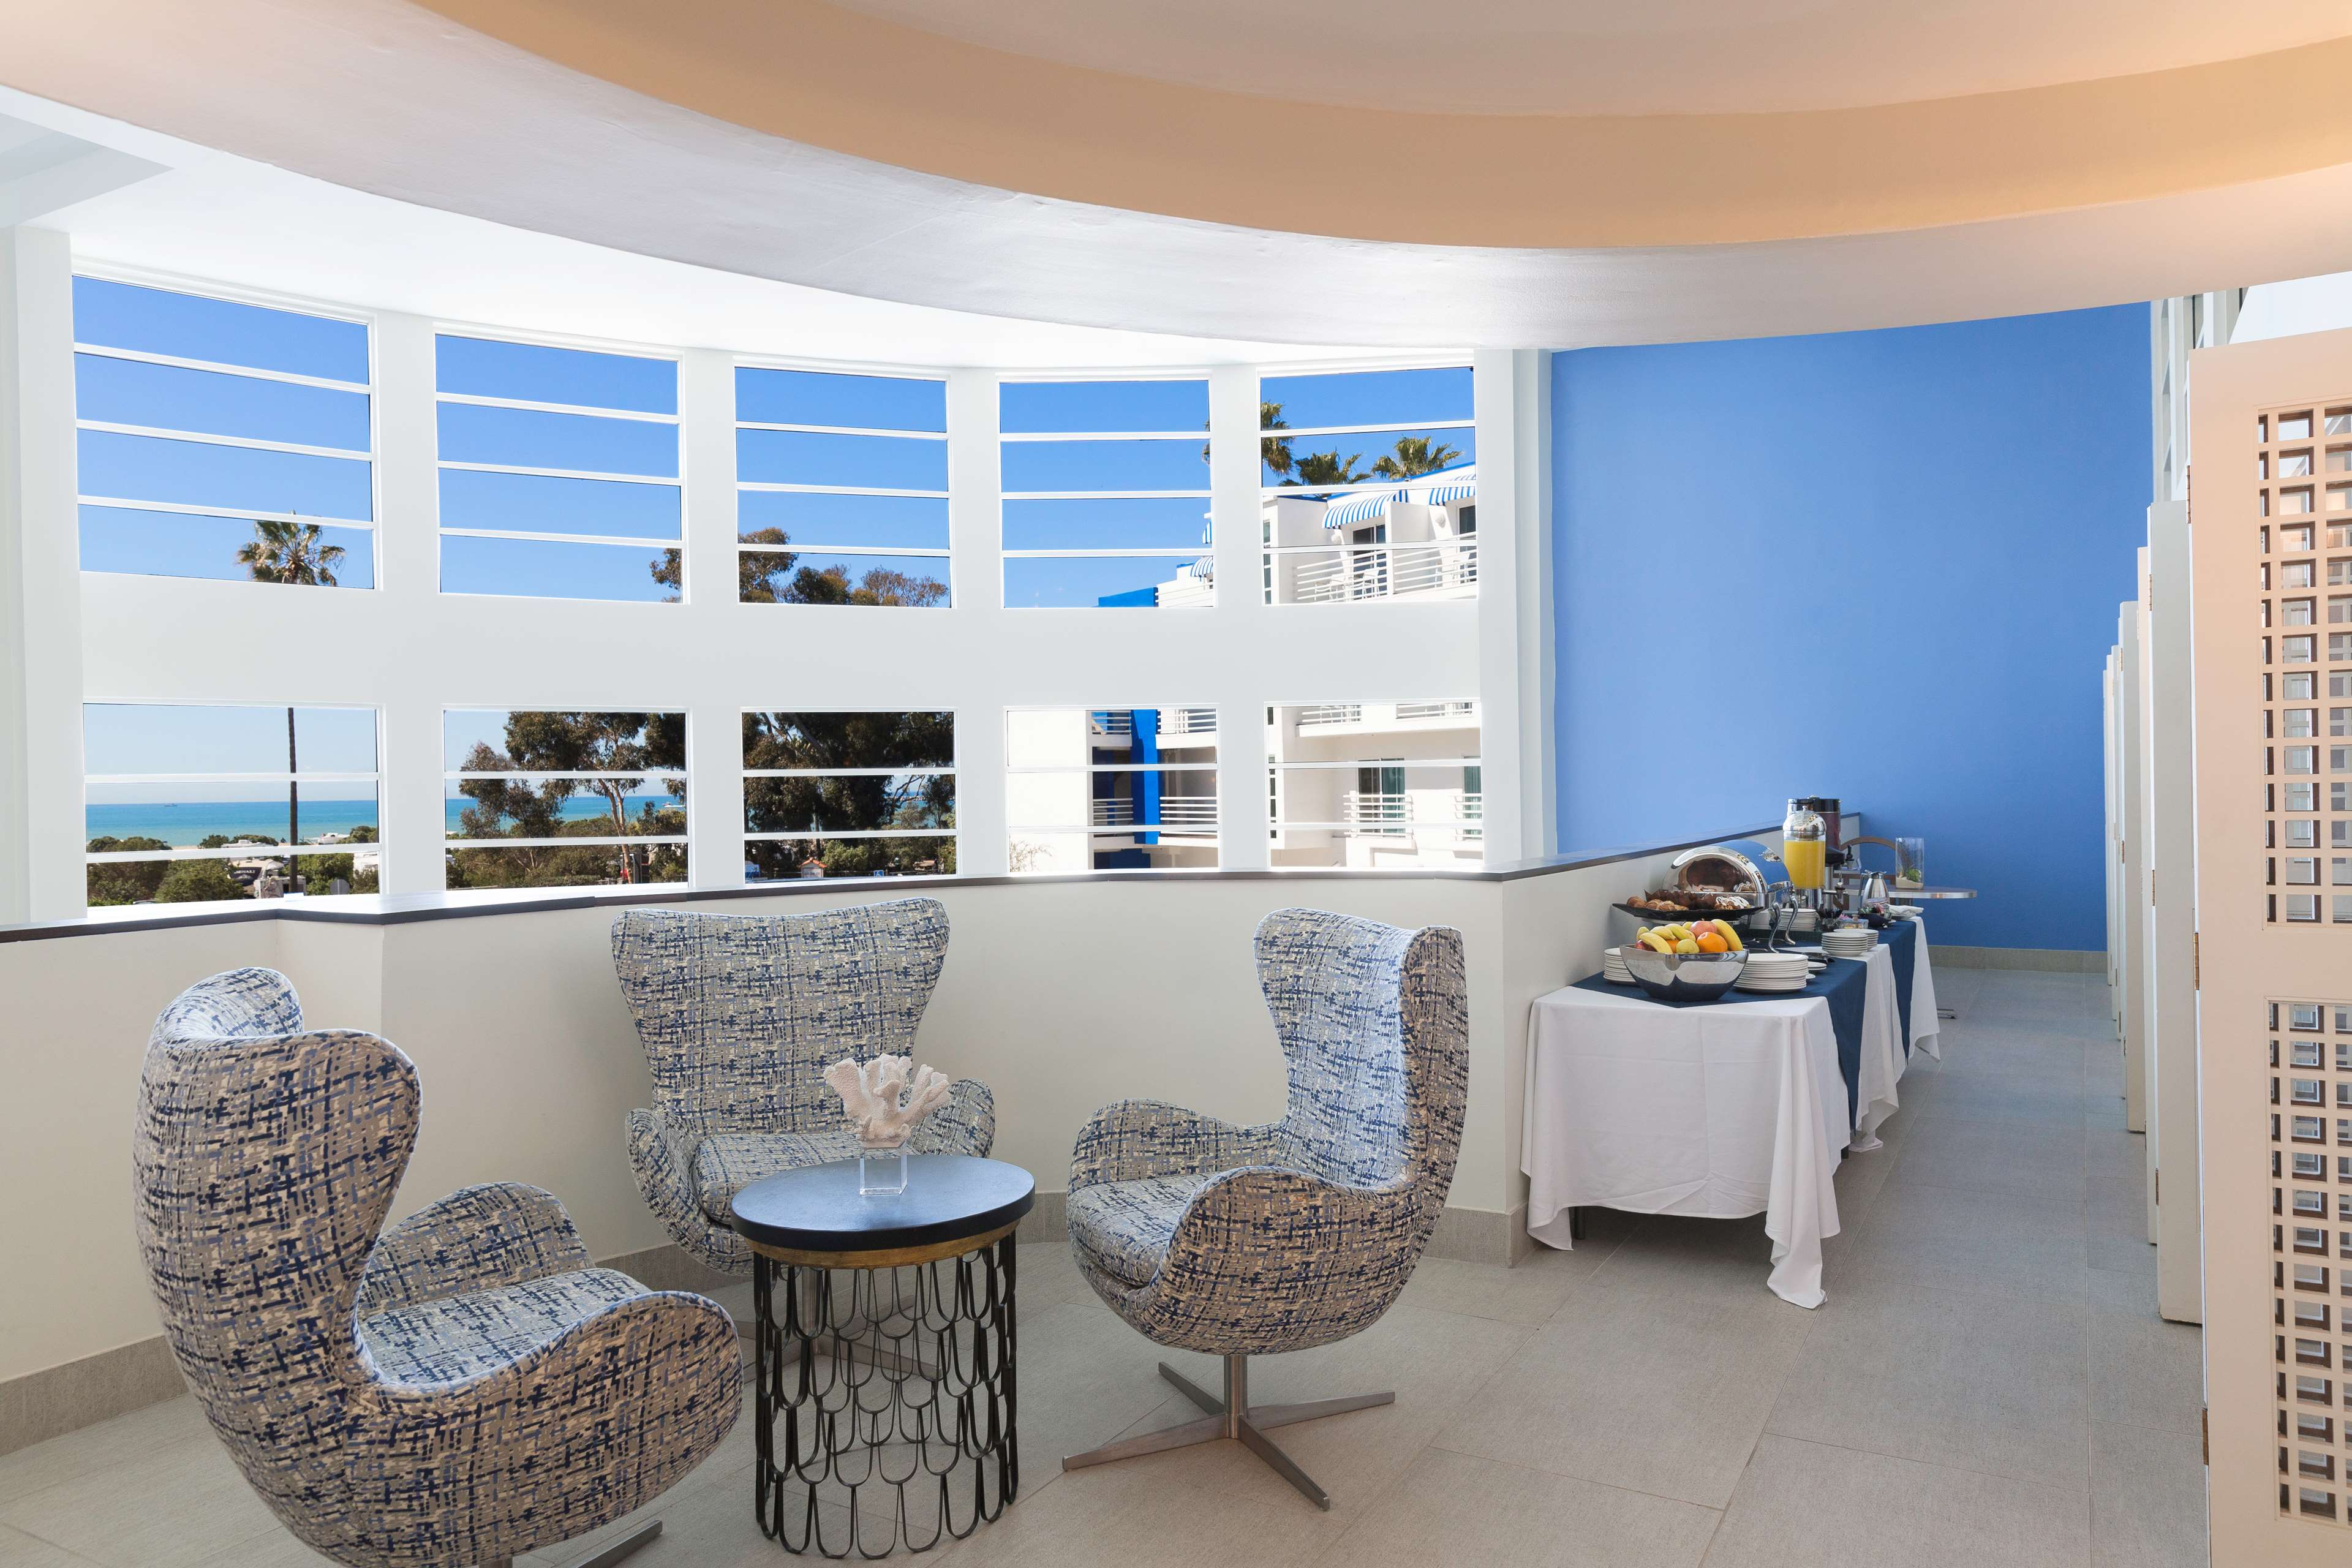 DoubleTree Suites by Hilton Hotel Doheny Beach - Dana Point image 26